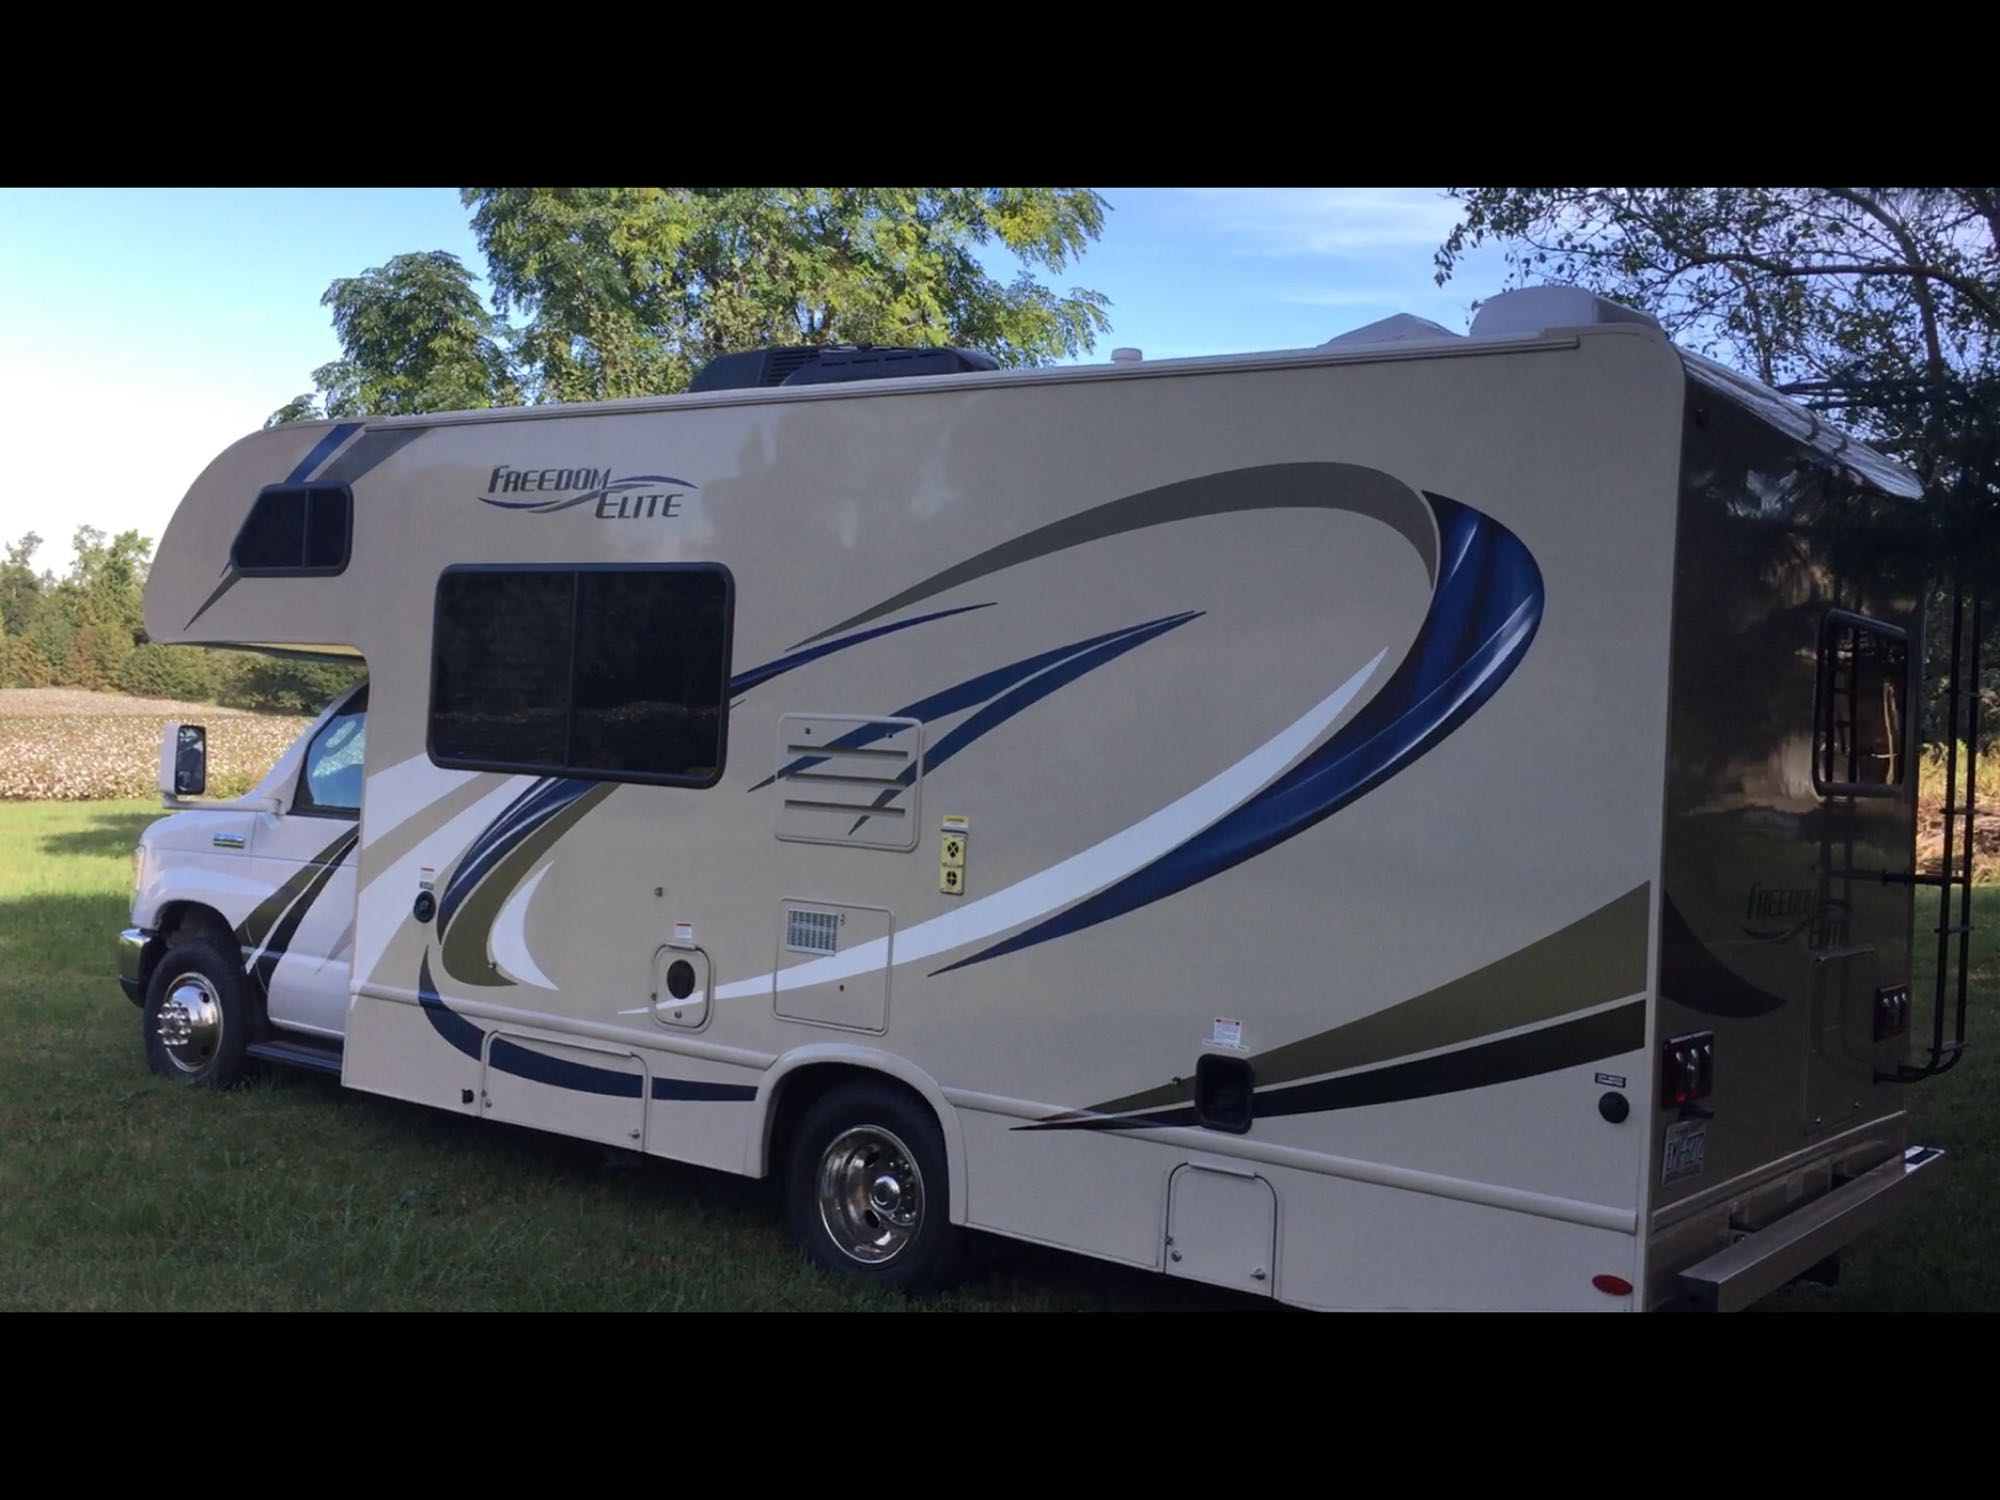 Parked at home.. Thor Motor Coach Freedom Elite 2018